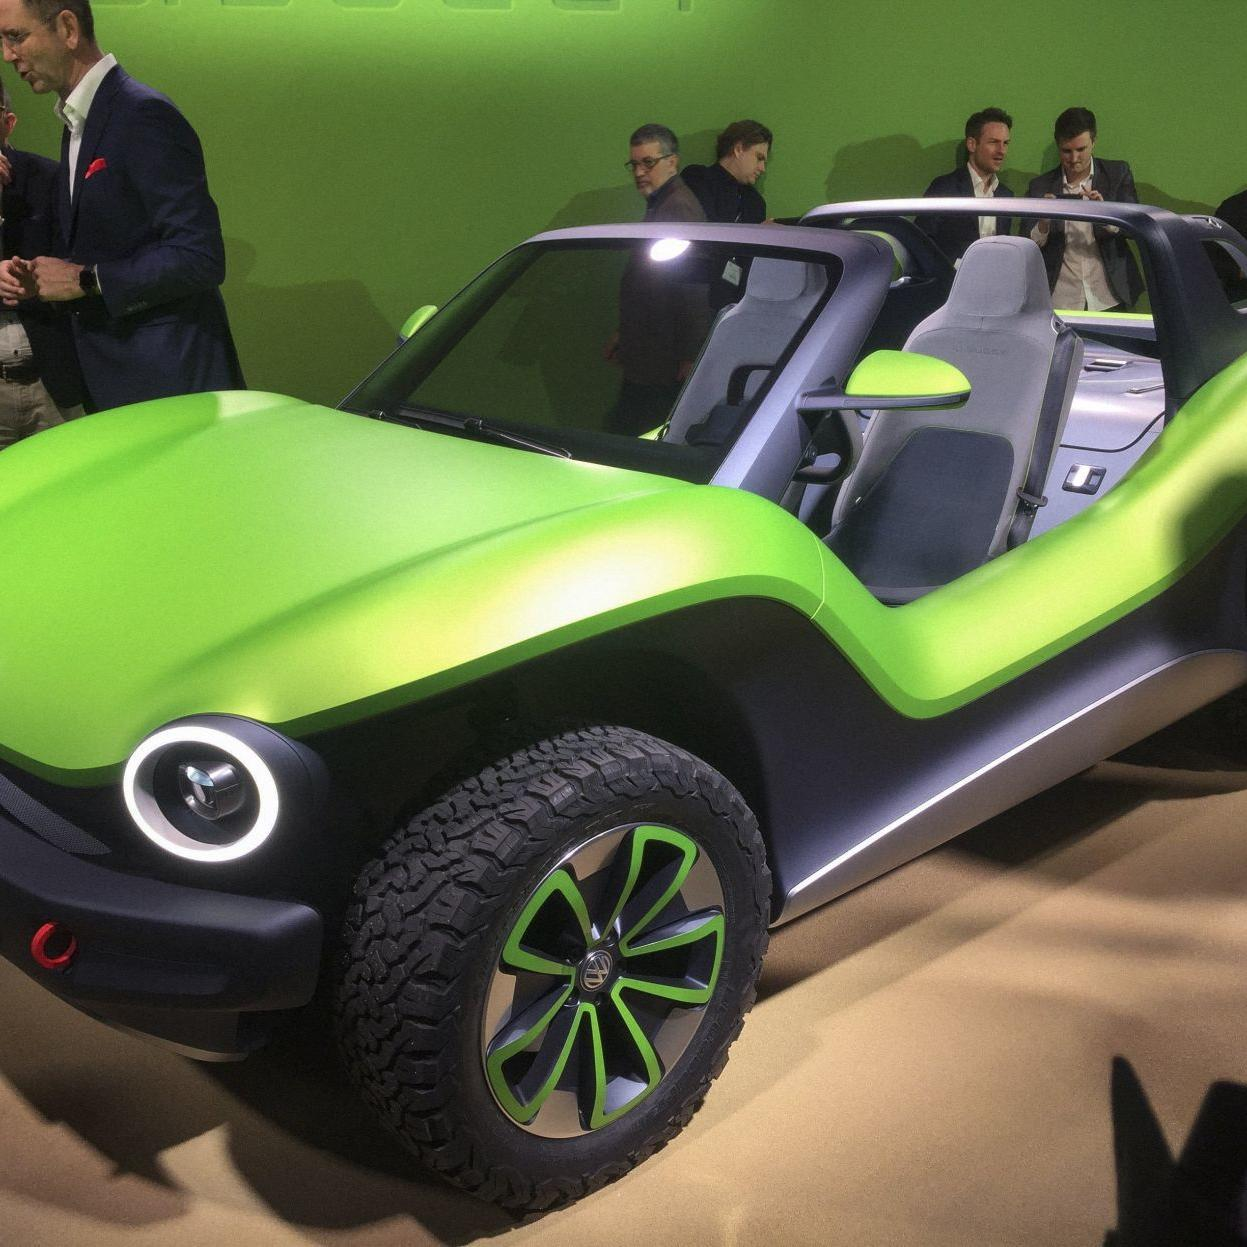 VW's iconic dune buggy could be making a comeback — only this time